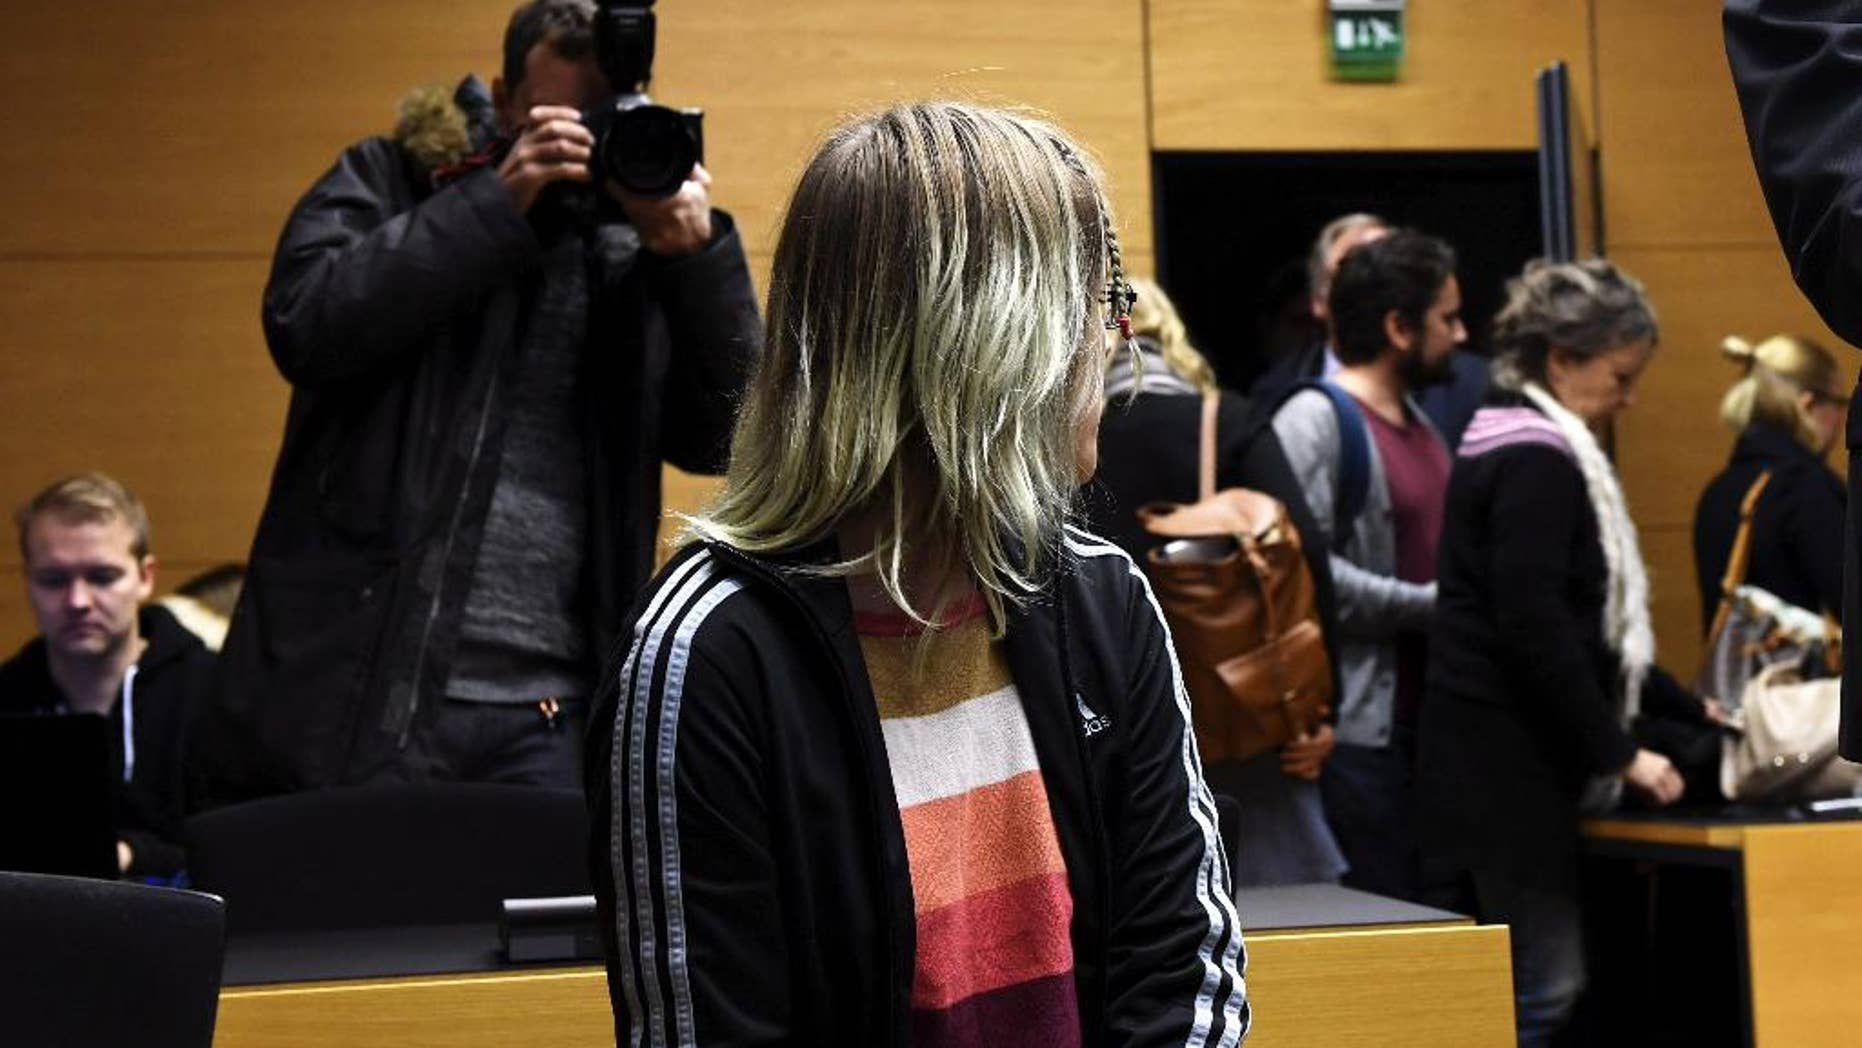 An unidentified 21-year-old Finnish woman is pictured at the Helsinki District Court on Friday Nov. 11, 2016. Prosecutors said the woman a former student was planning a school shooting in central Finland that would kill at least 40 students.(Vesa Moilanen, Lehtikuva via AP)